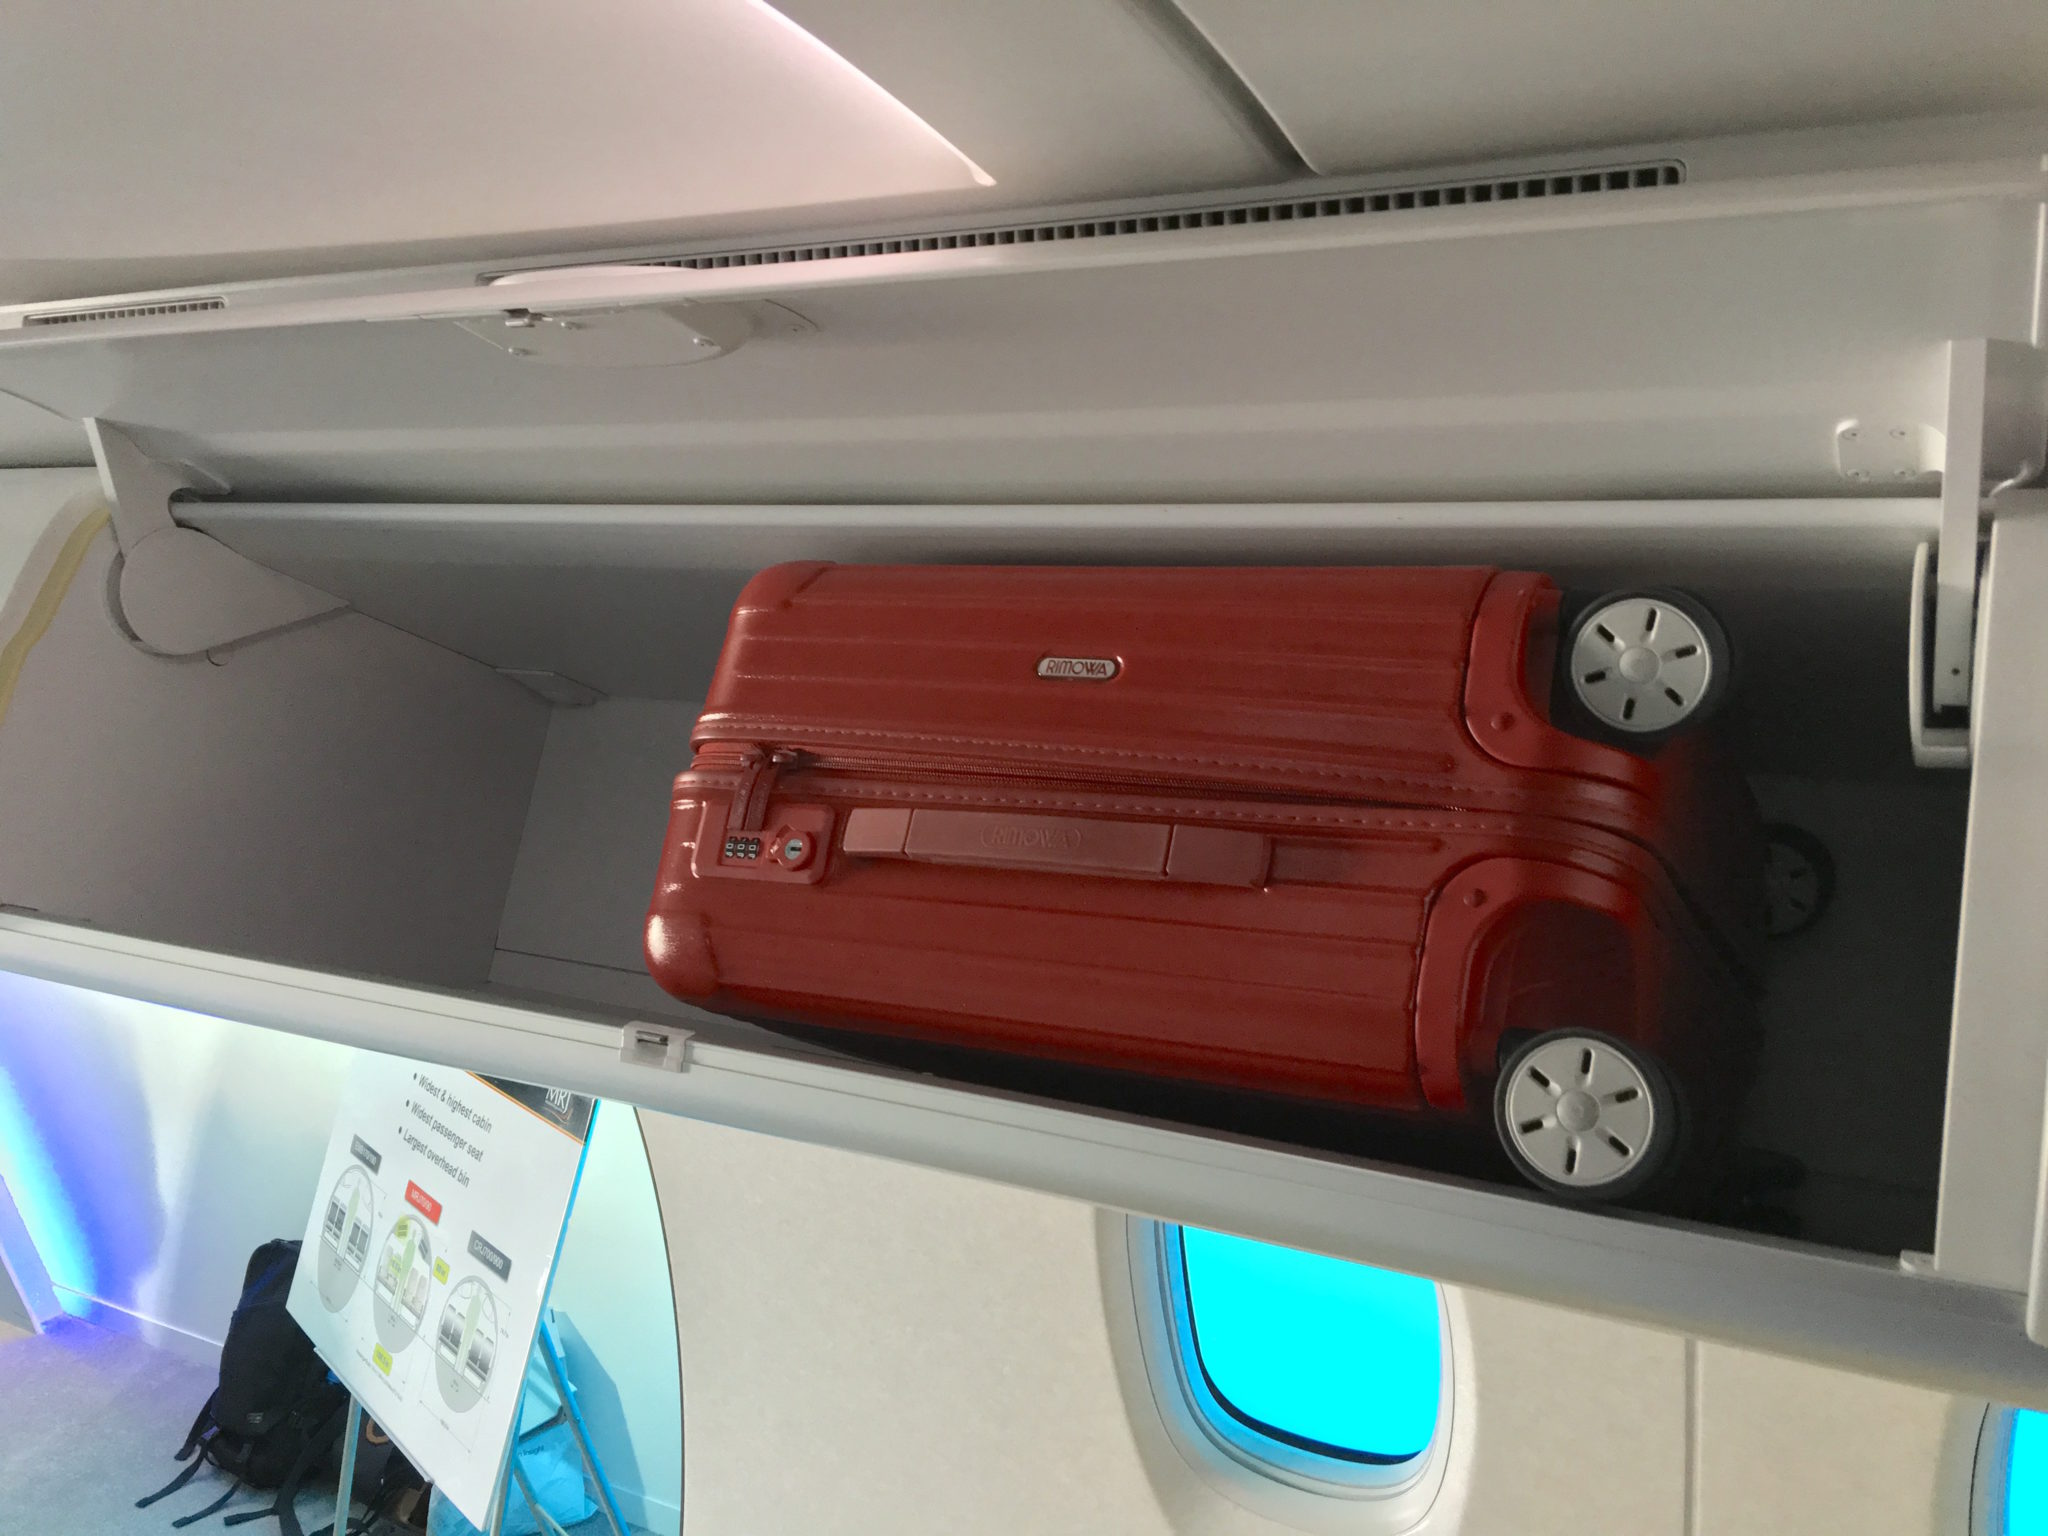 If this mini-Rimowa takes up this much space, that's a problem for the MRJ. Image: John Walton